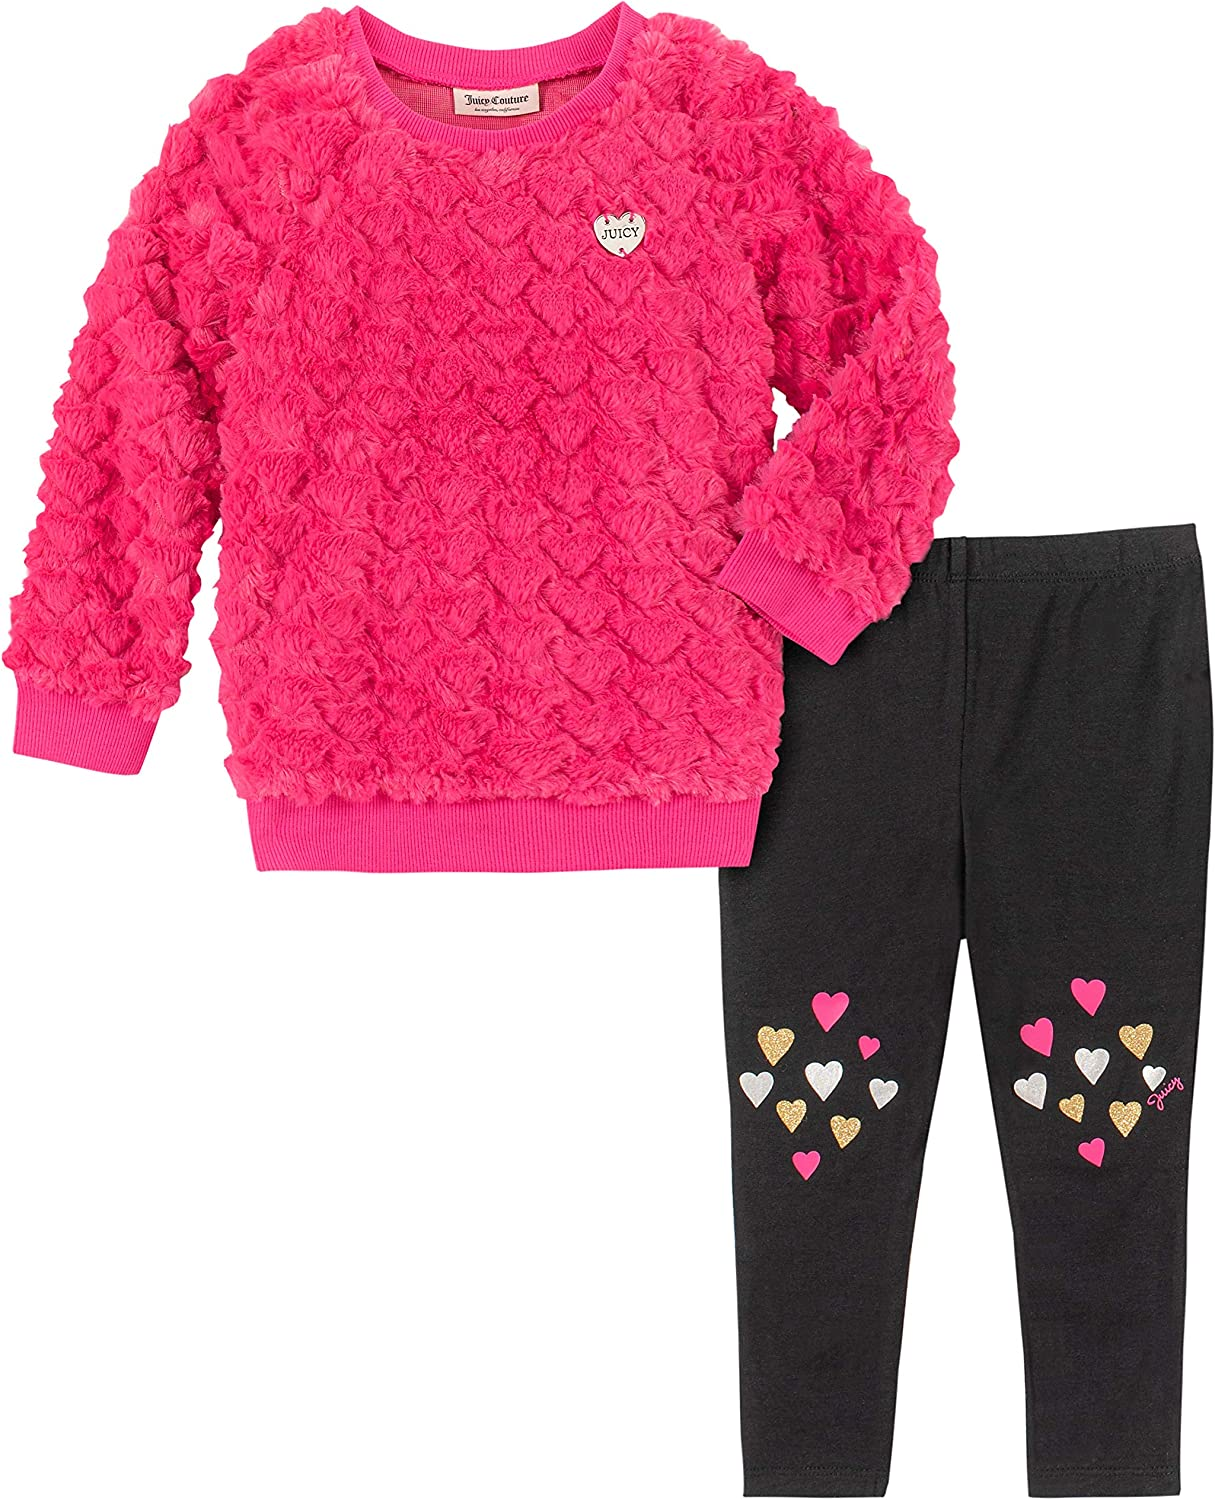 Juicy Couture Girls' 2 Pieces Legging Set